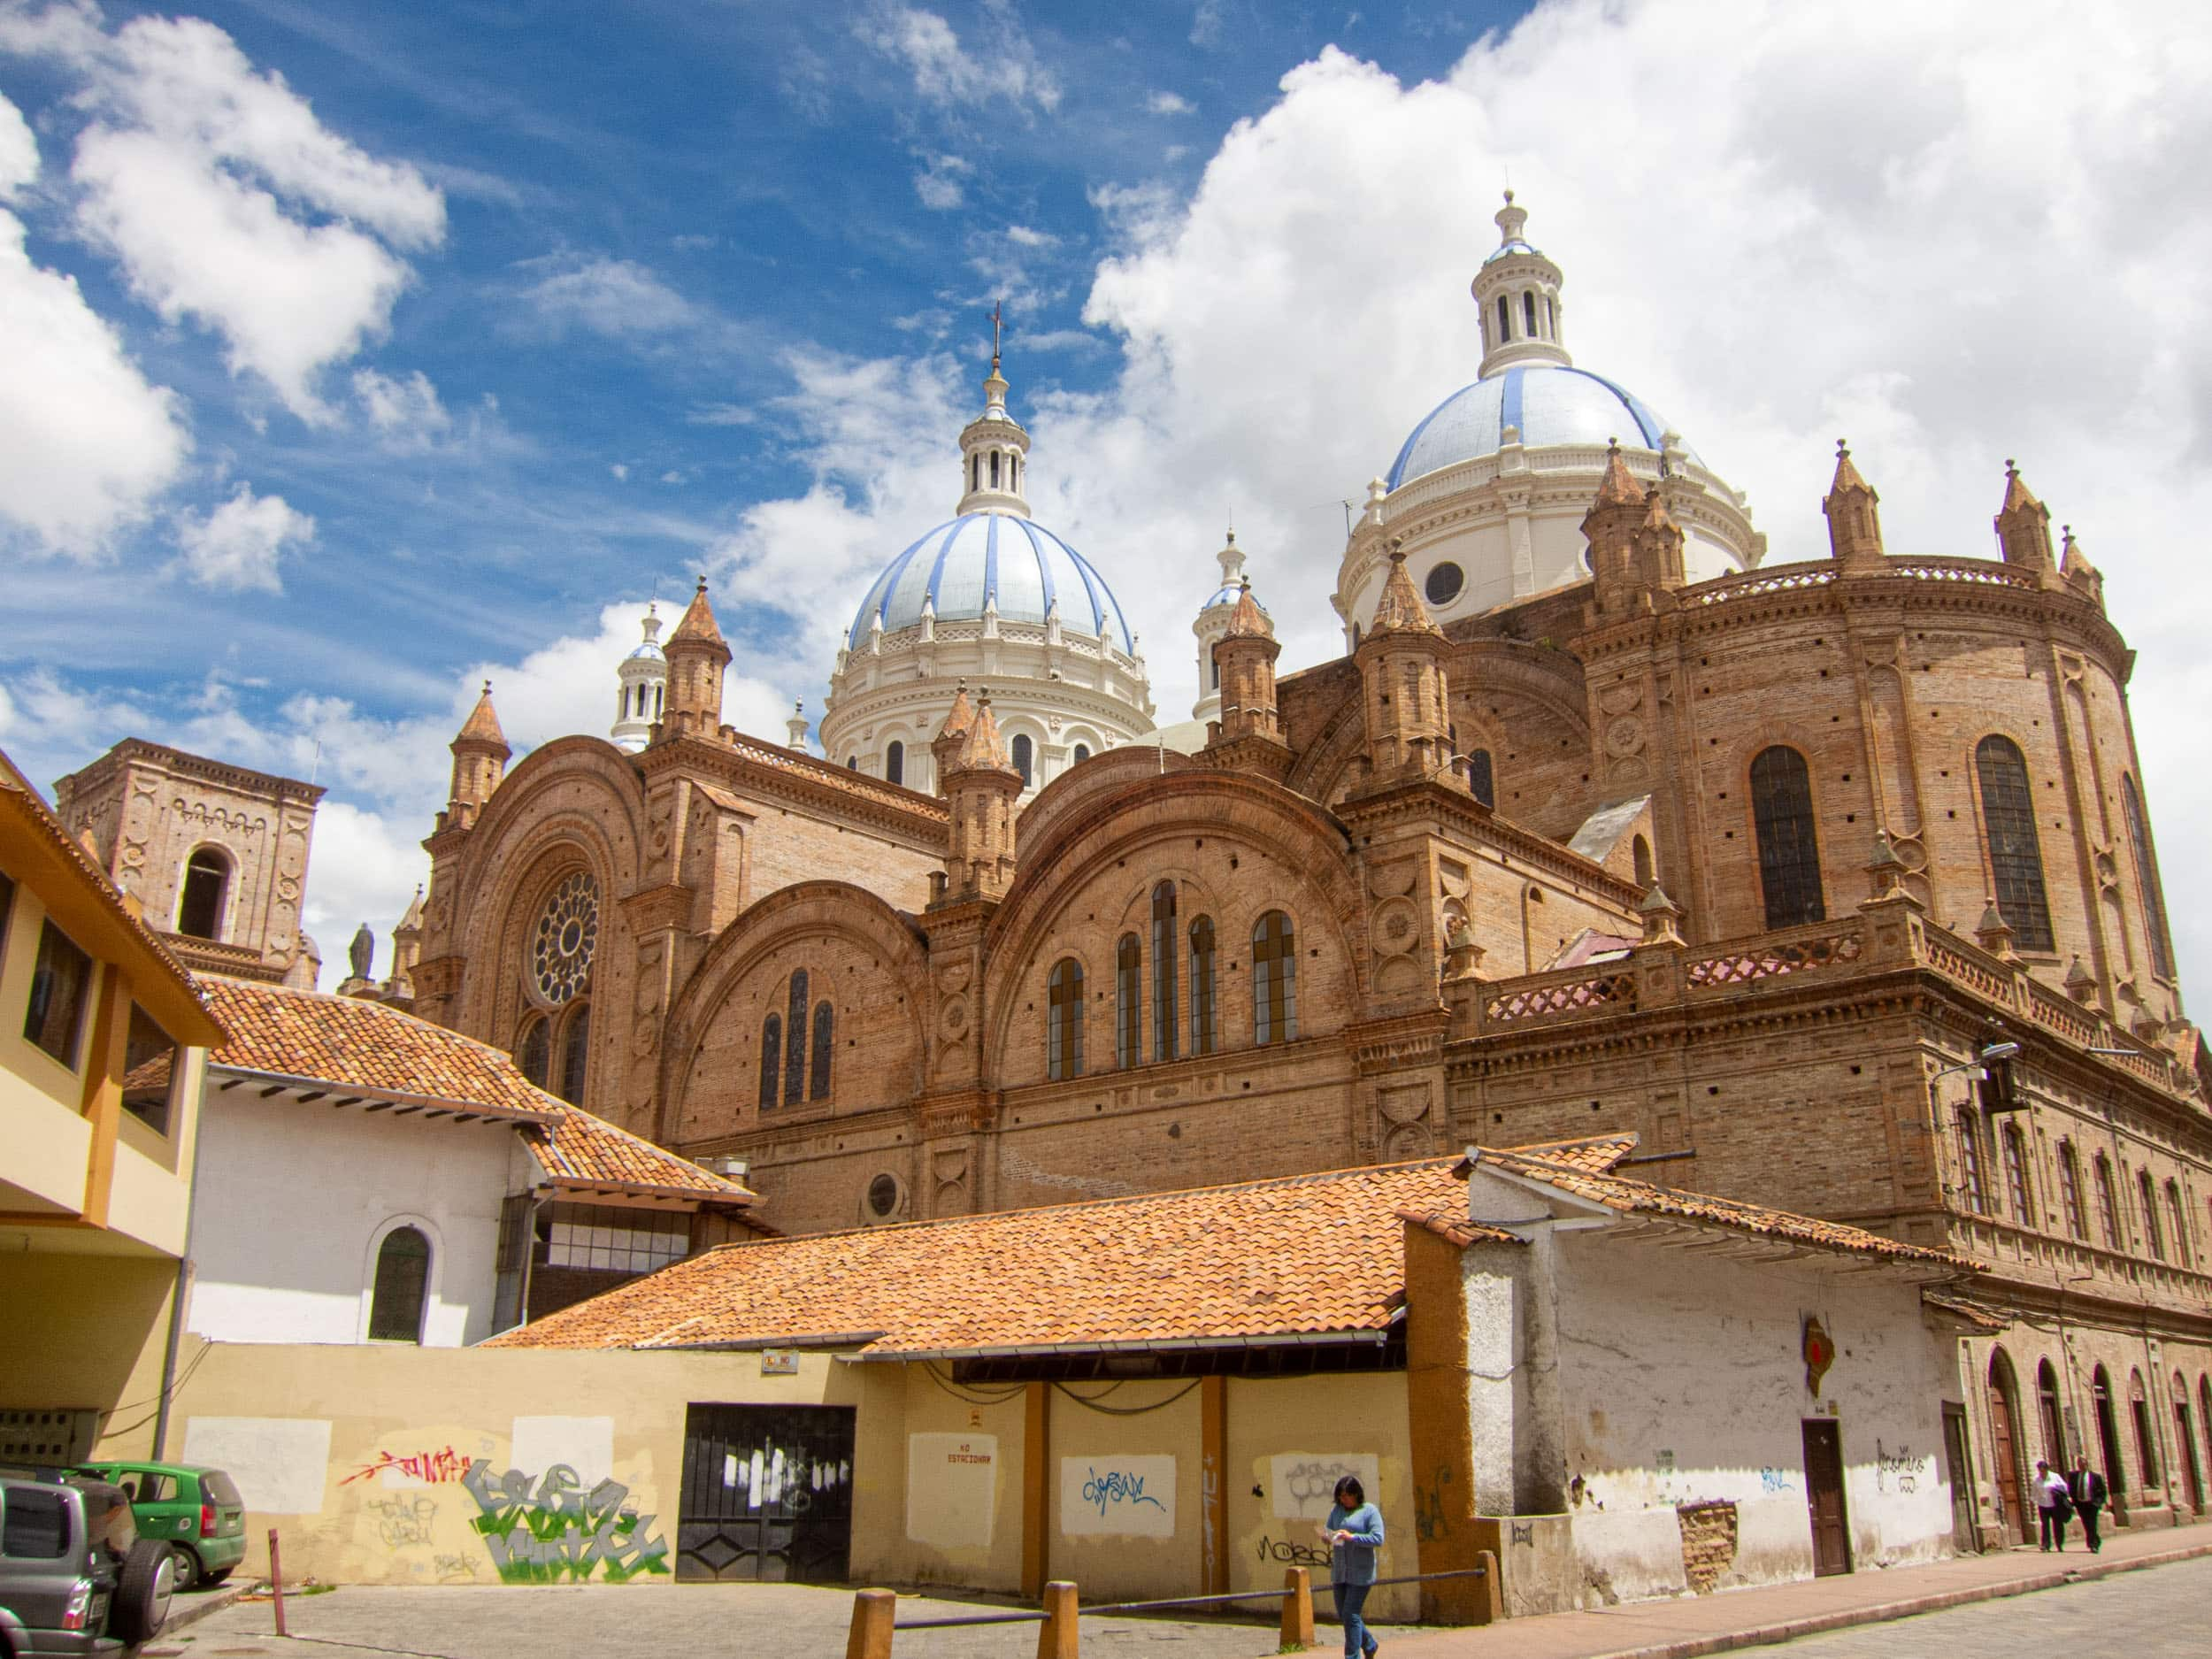 The blue and white domes of La Catedral